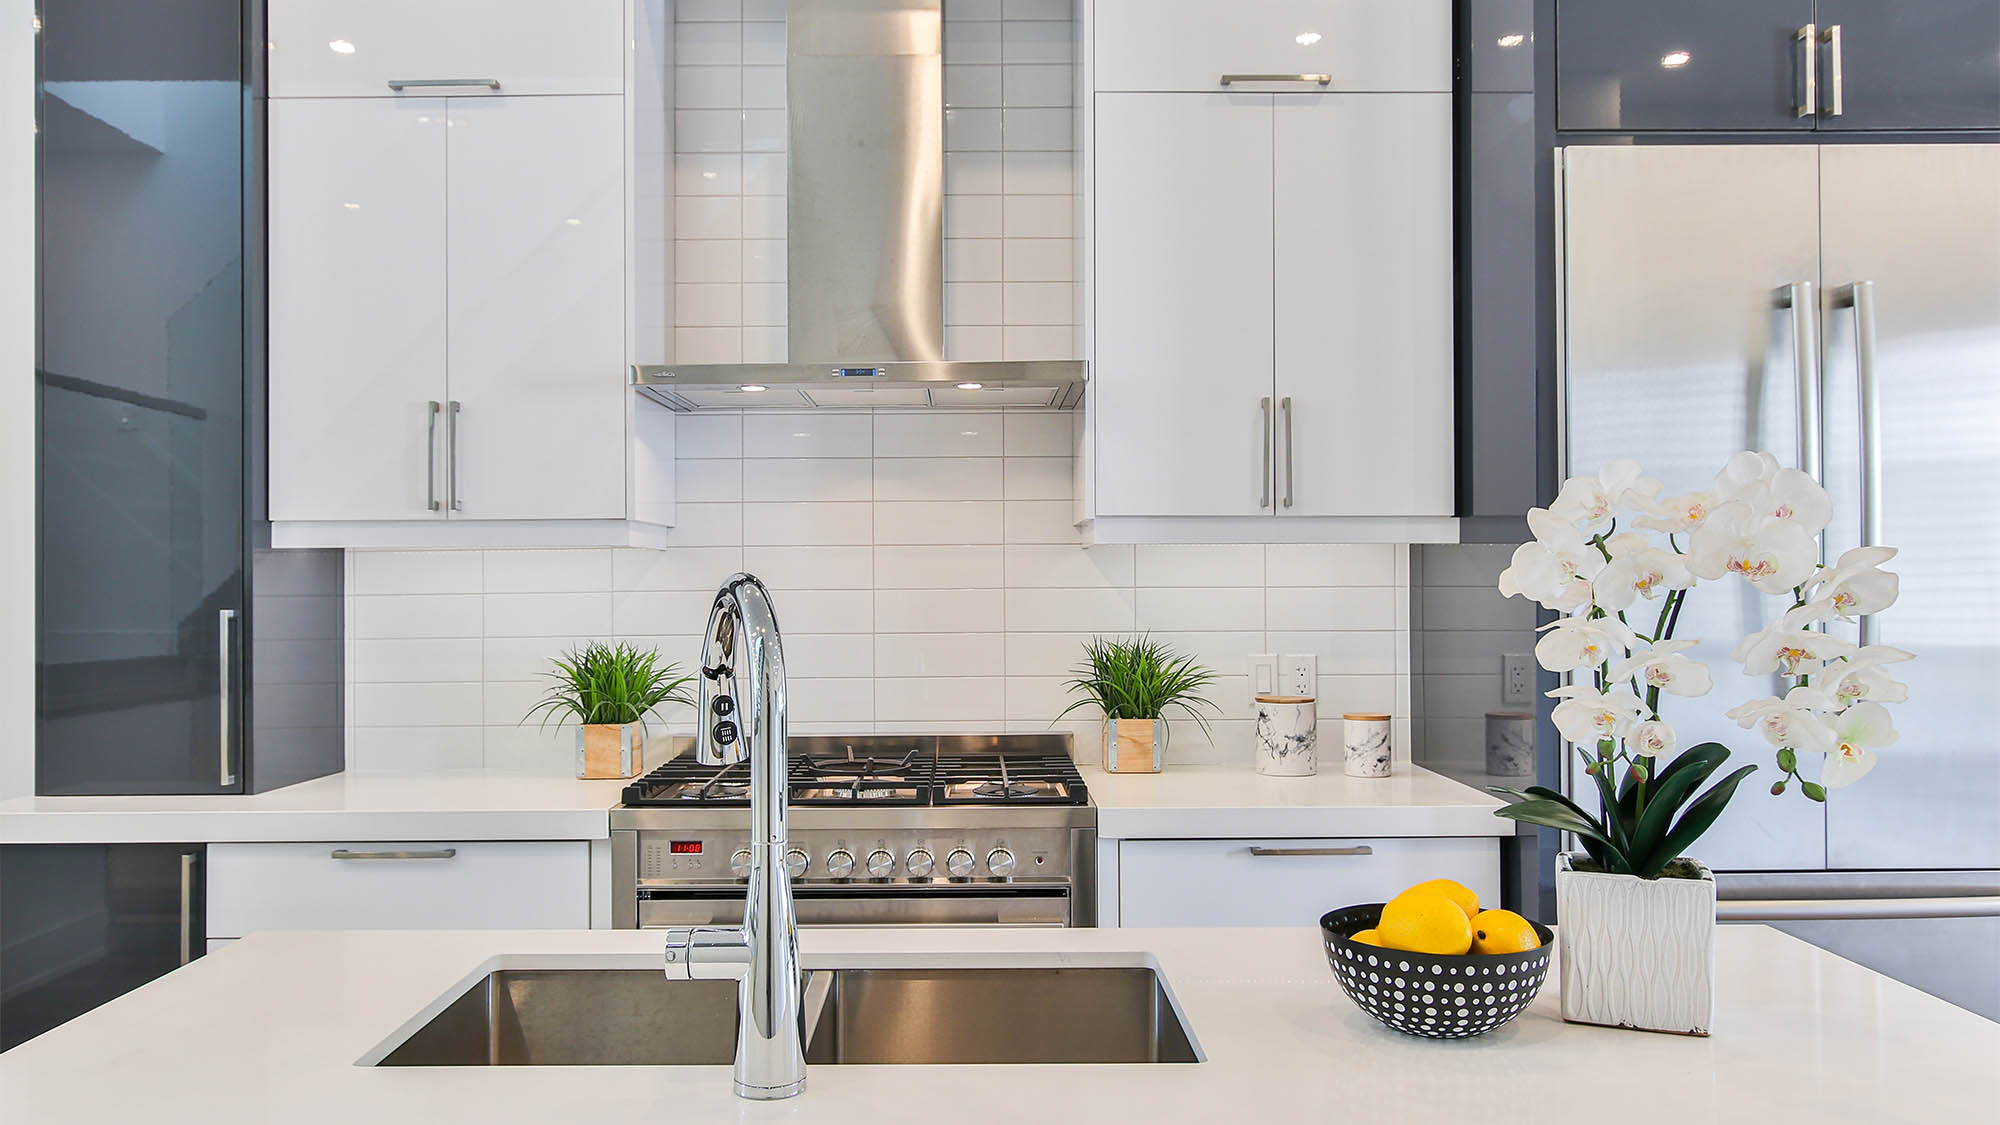 Stainless steel oven and hood flanked by white cabinets with white tile backsplash and view from over kitchen sink